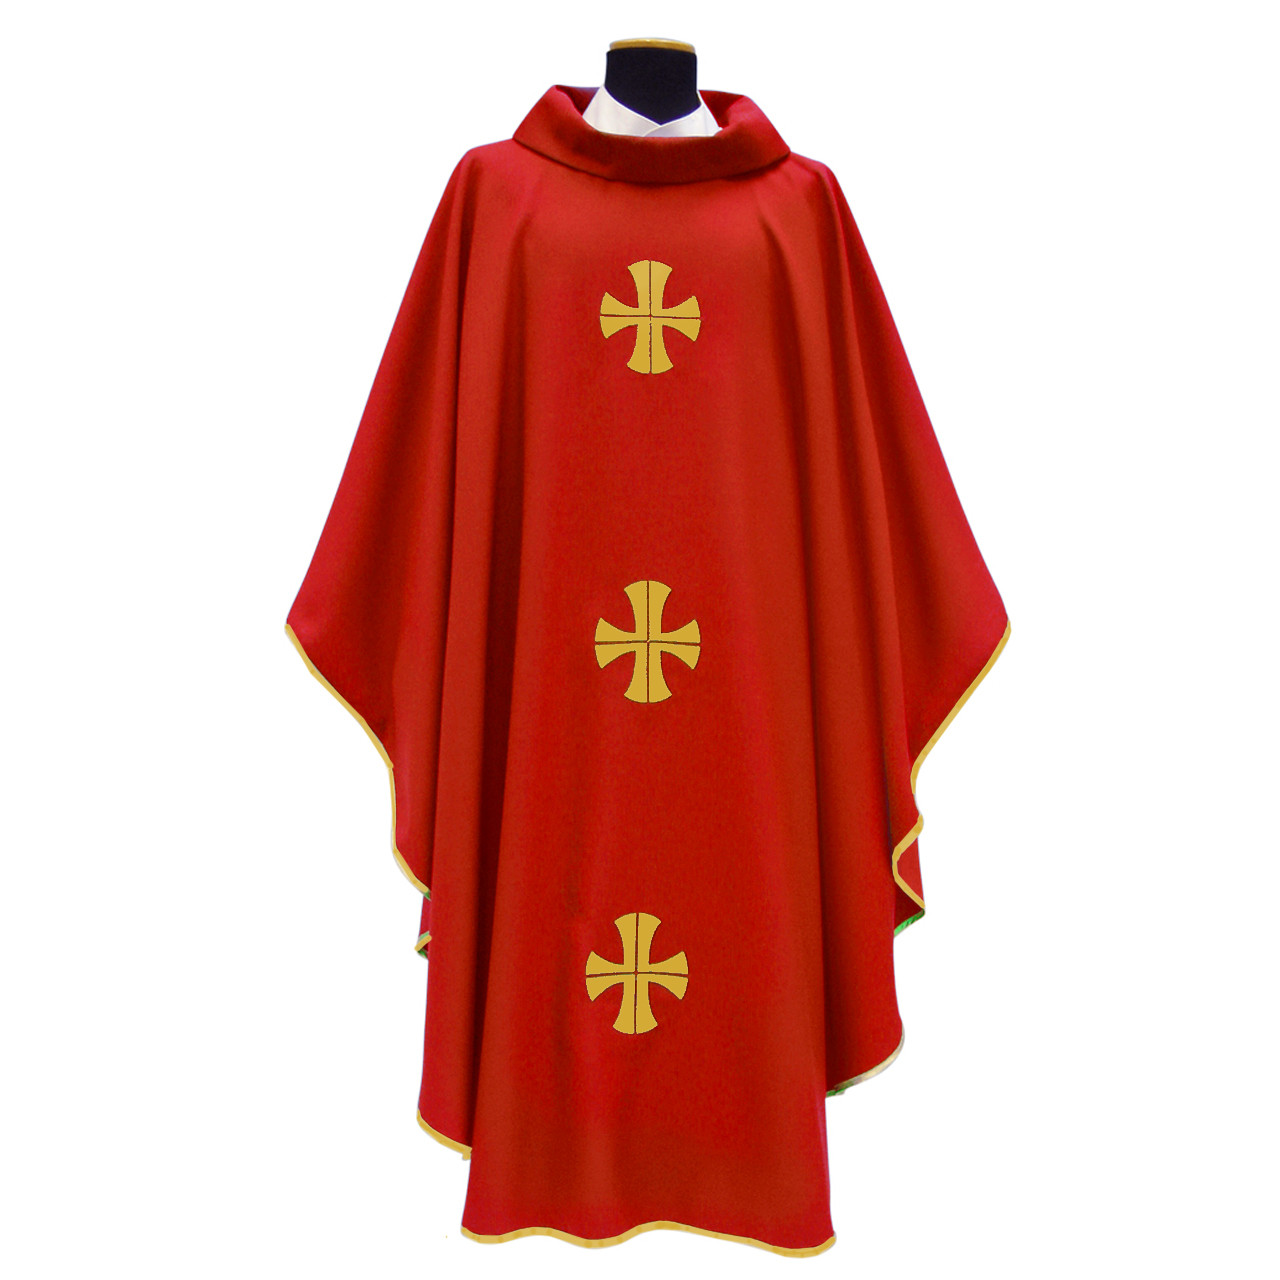 318 Chasuble in Monastico Fabric Red